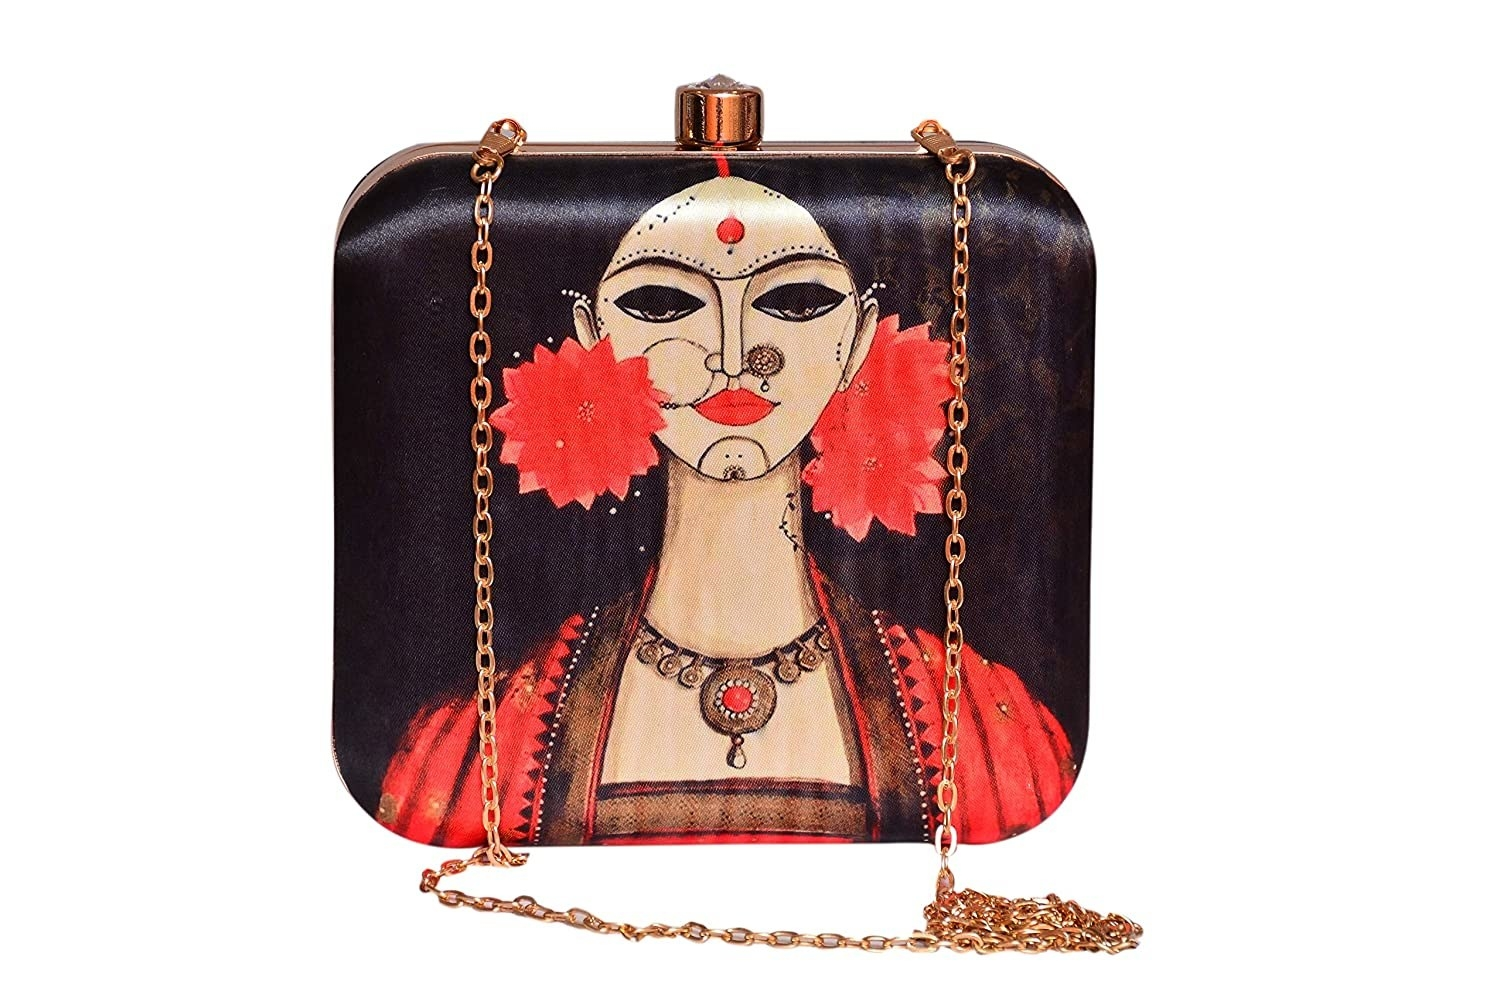 A sling bag with a the painting of a woman on it